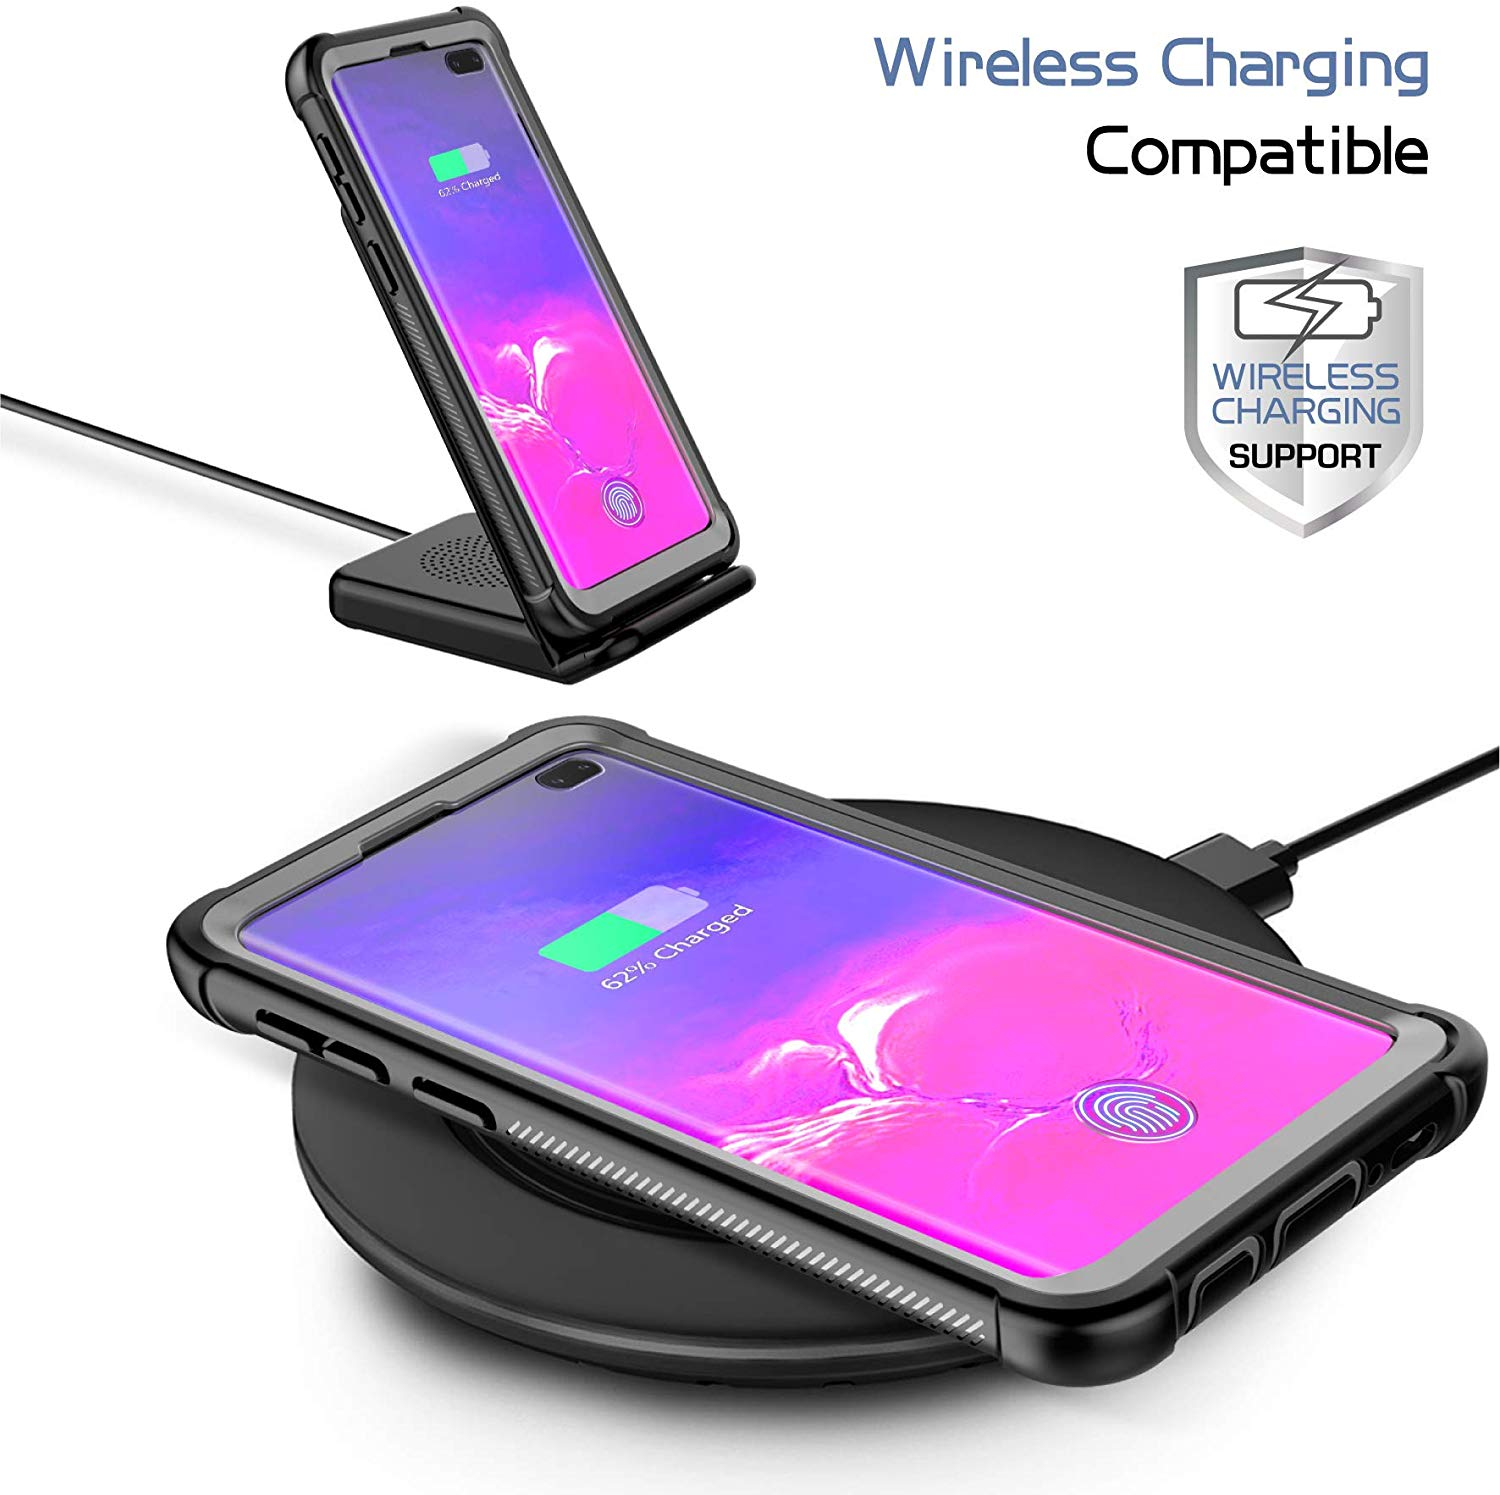 Samsung Galaxy S10 Plus Case wireless charging capable